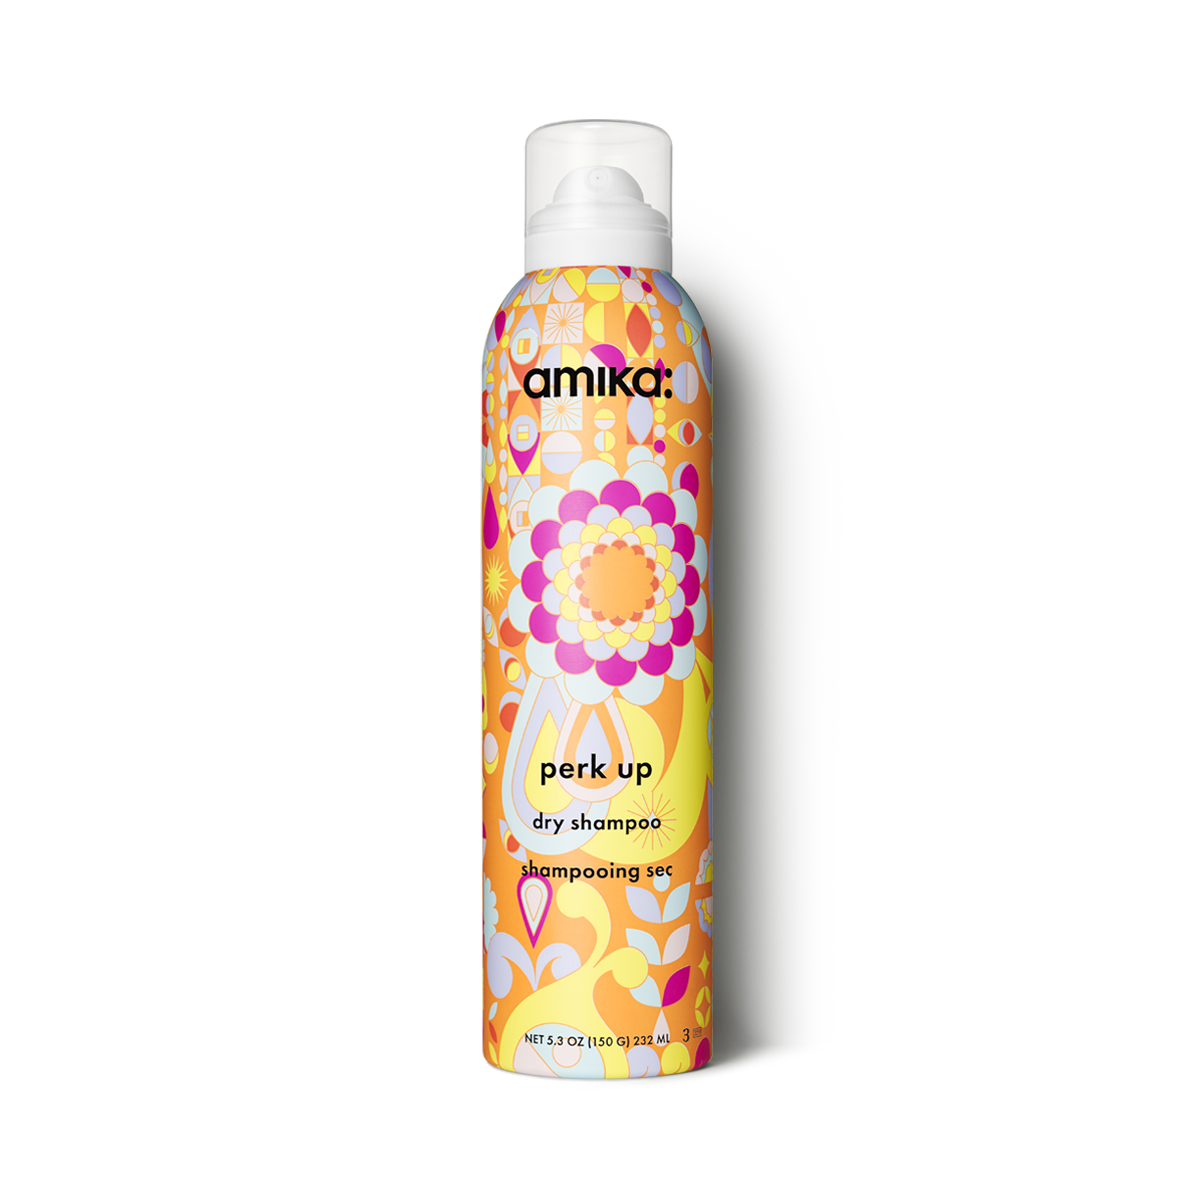 perk up | dry shampoo